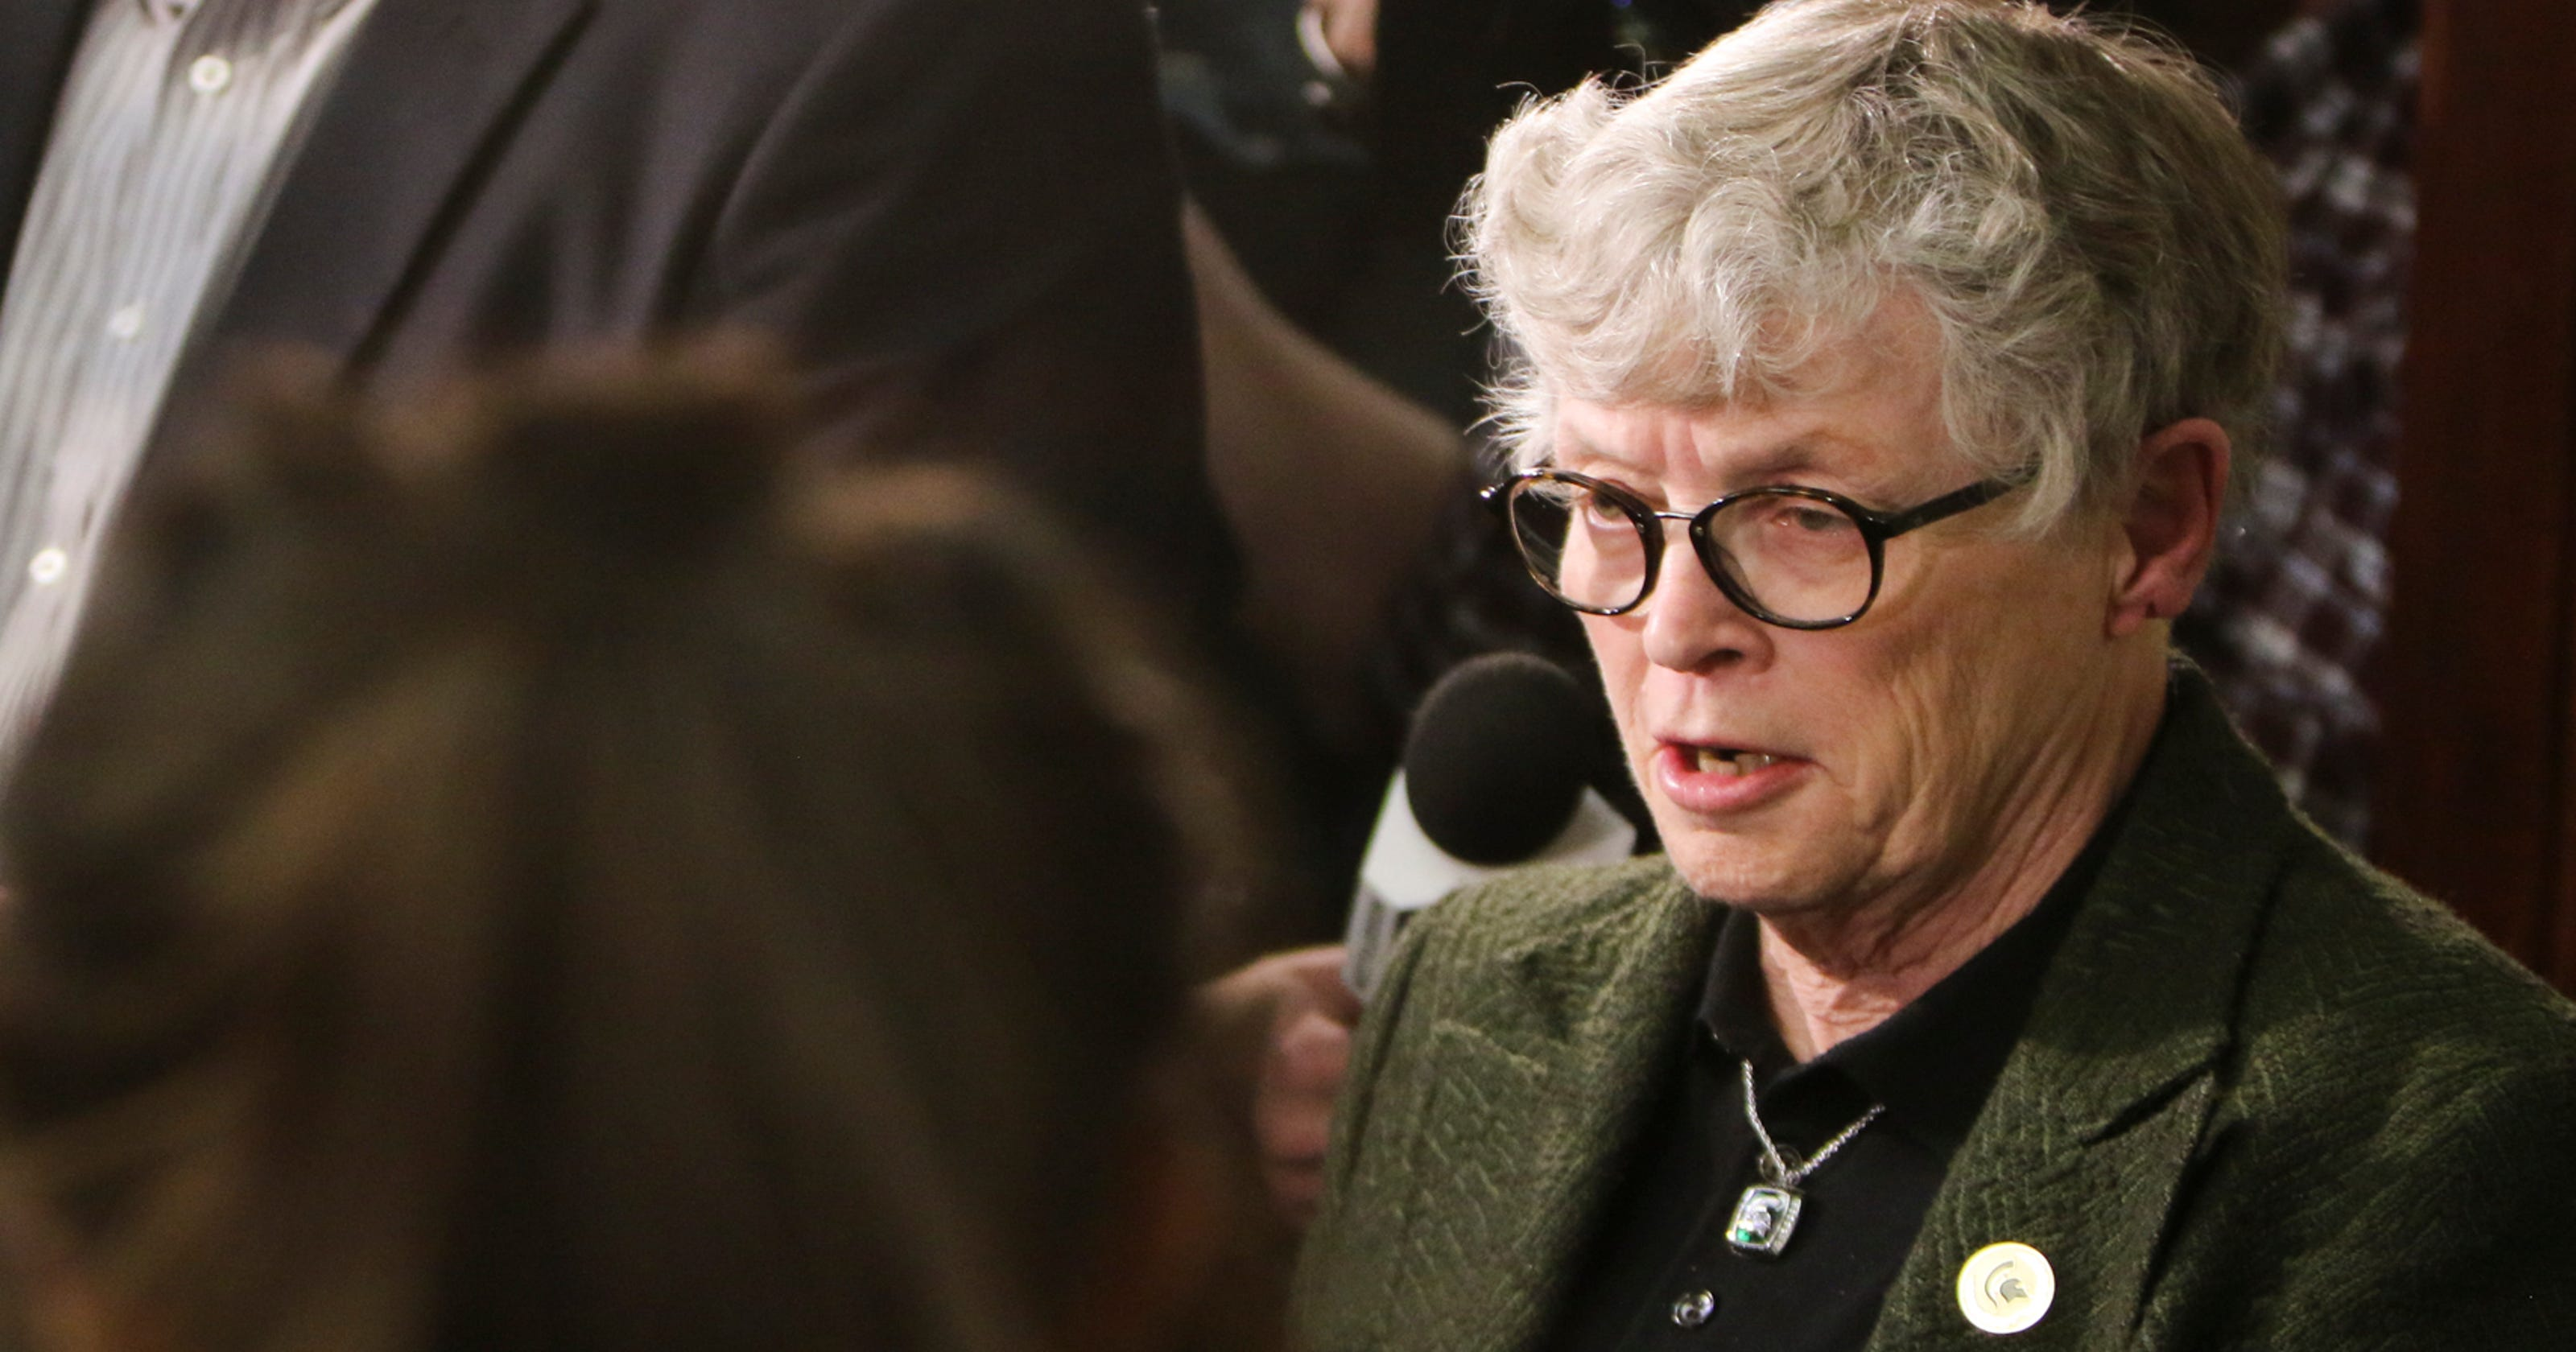 Ex-MSU president Lou Anna Simon charged with lying about